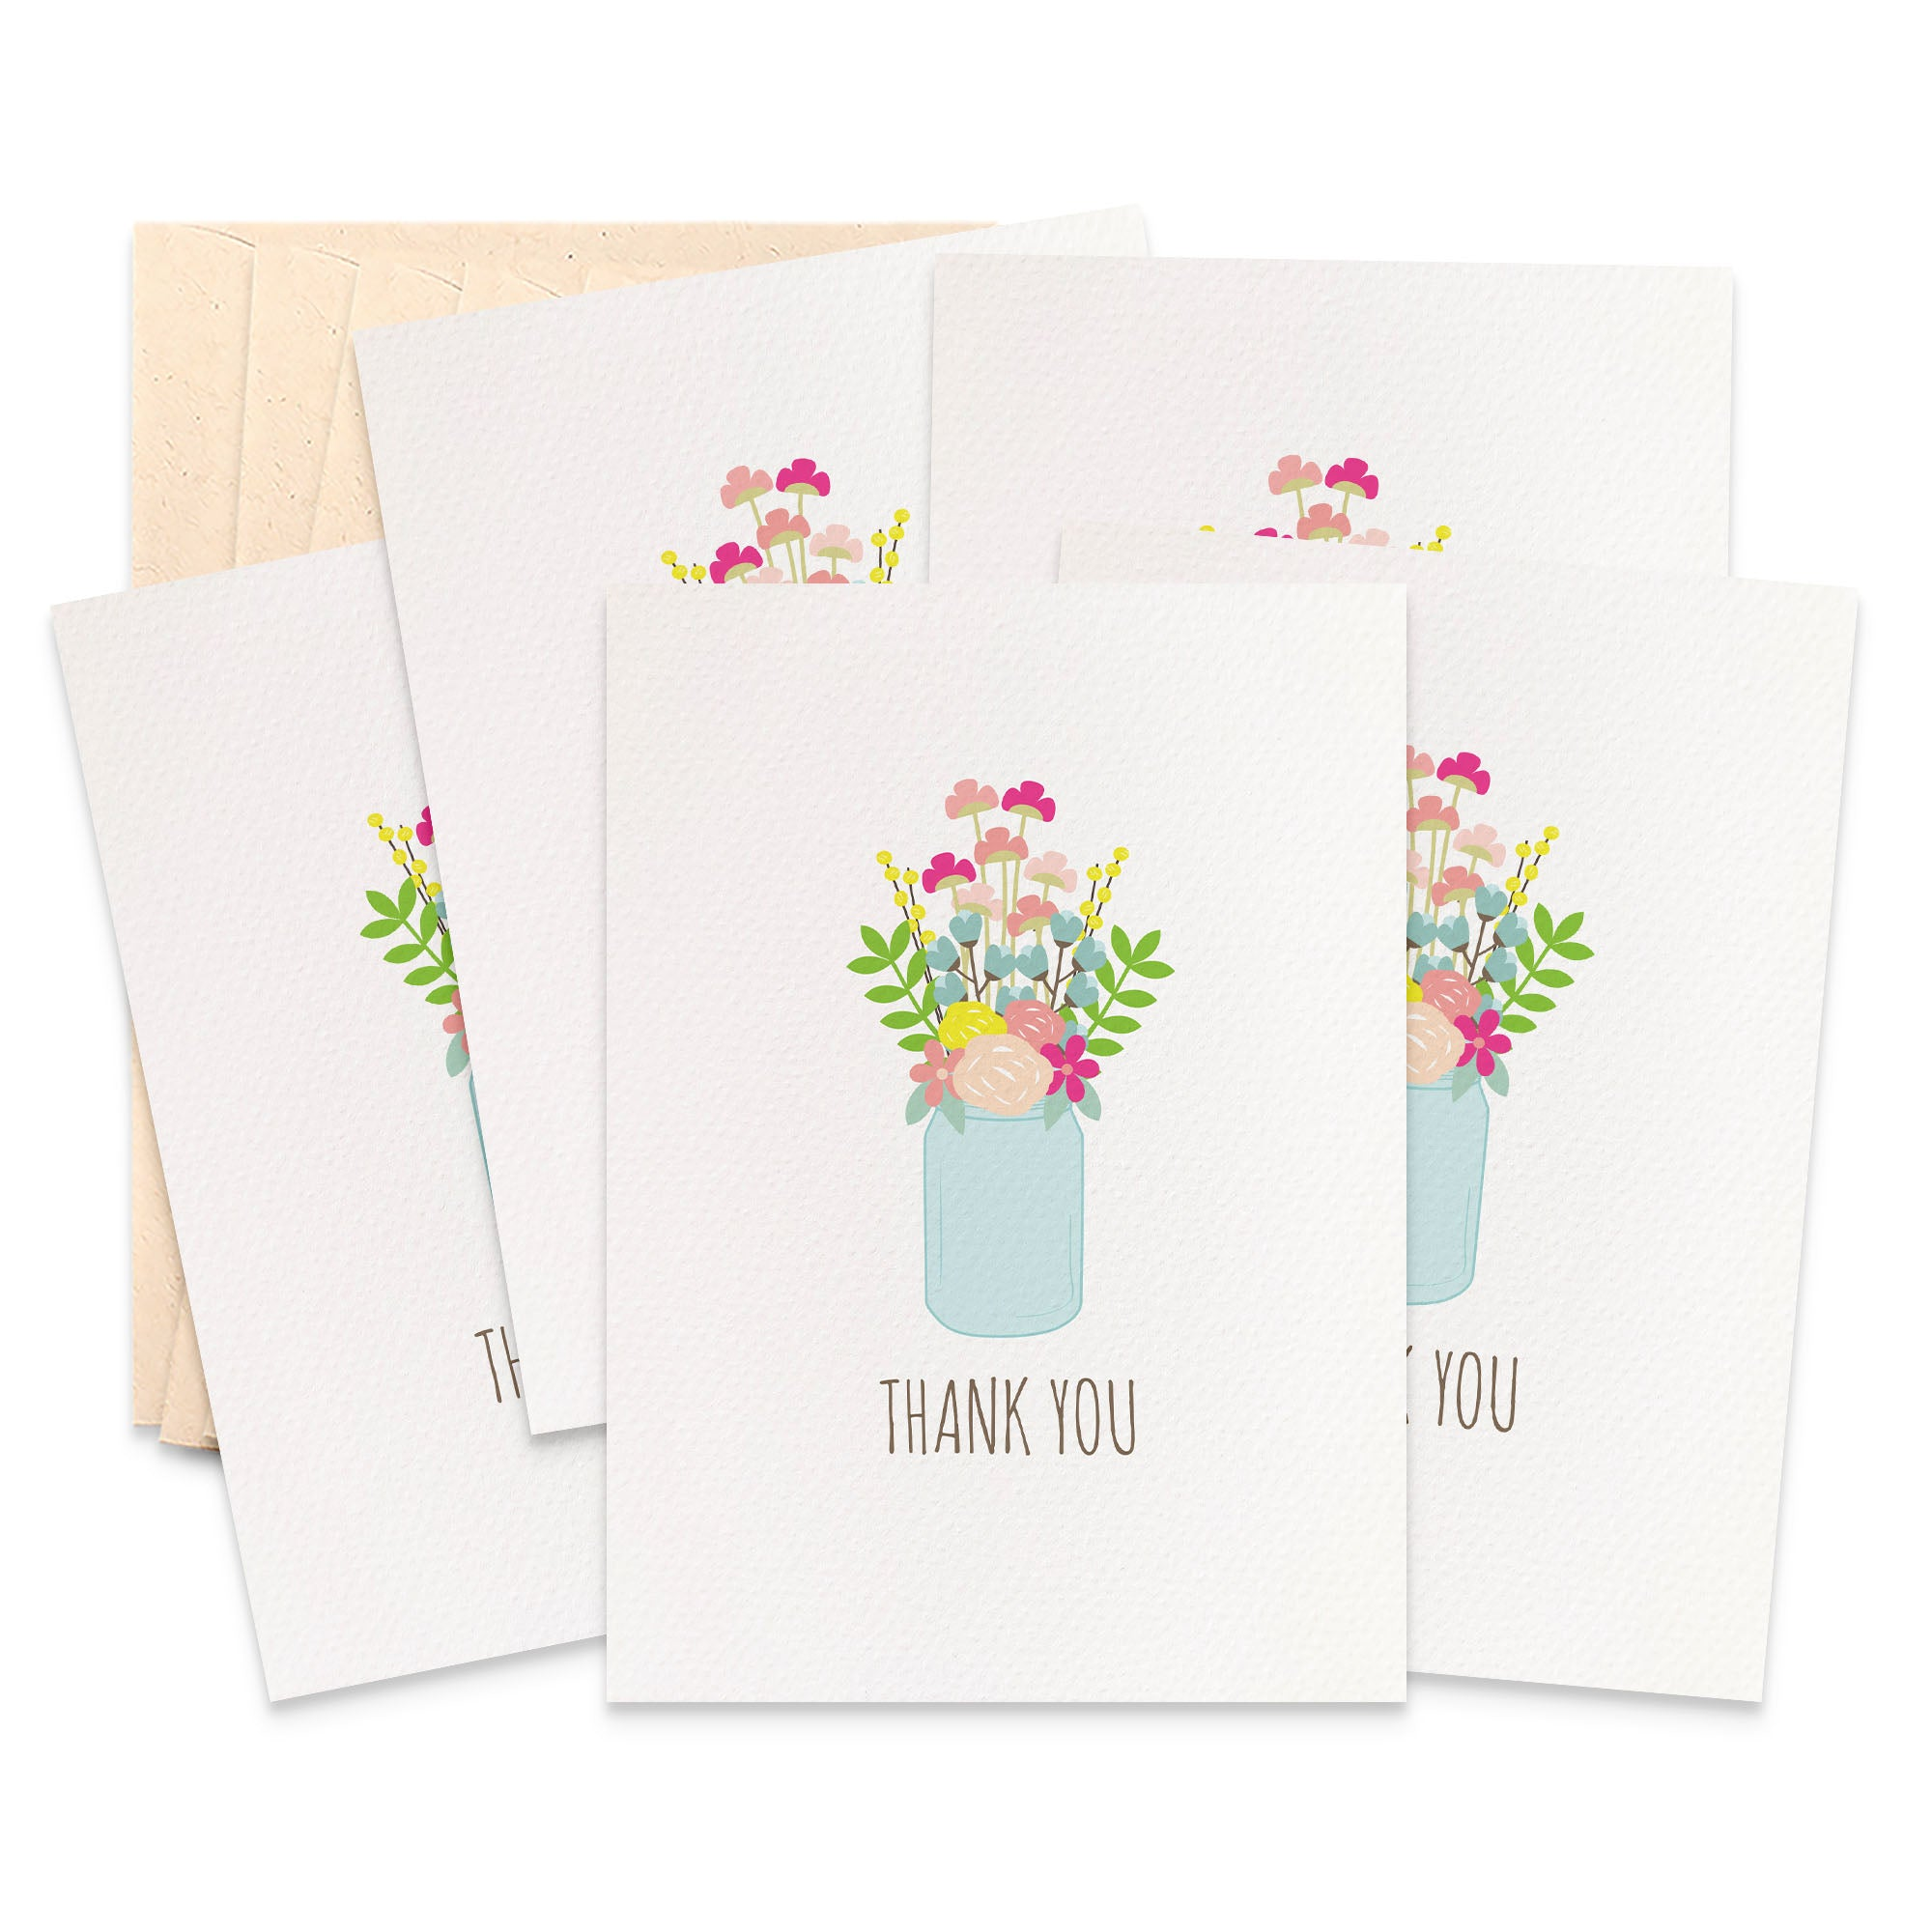 Set of 5 - Mason Jar Greeting Cards by mumandmehandmadedesigns- An Australian Online Stationery and Card Shop